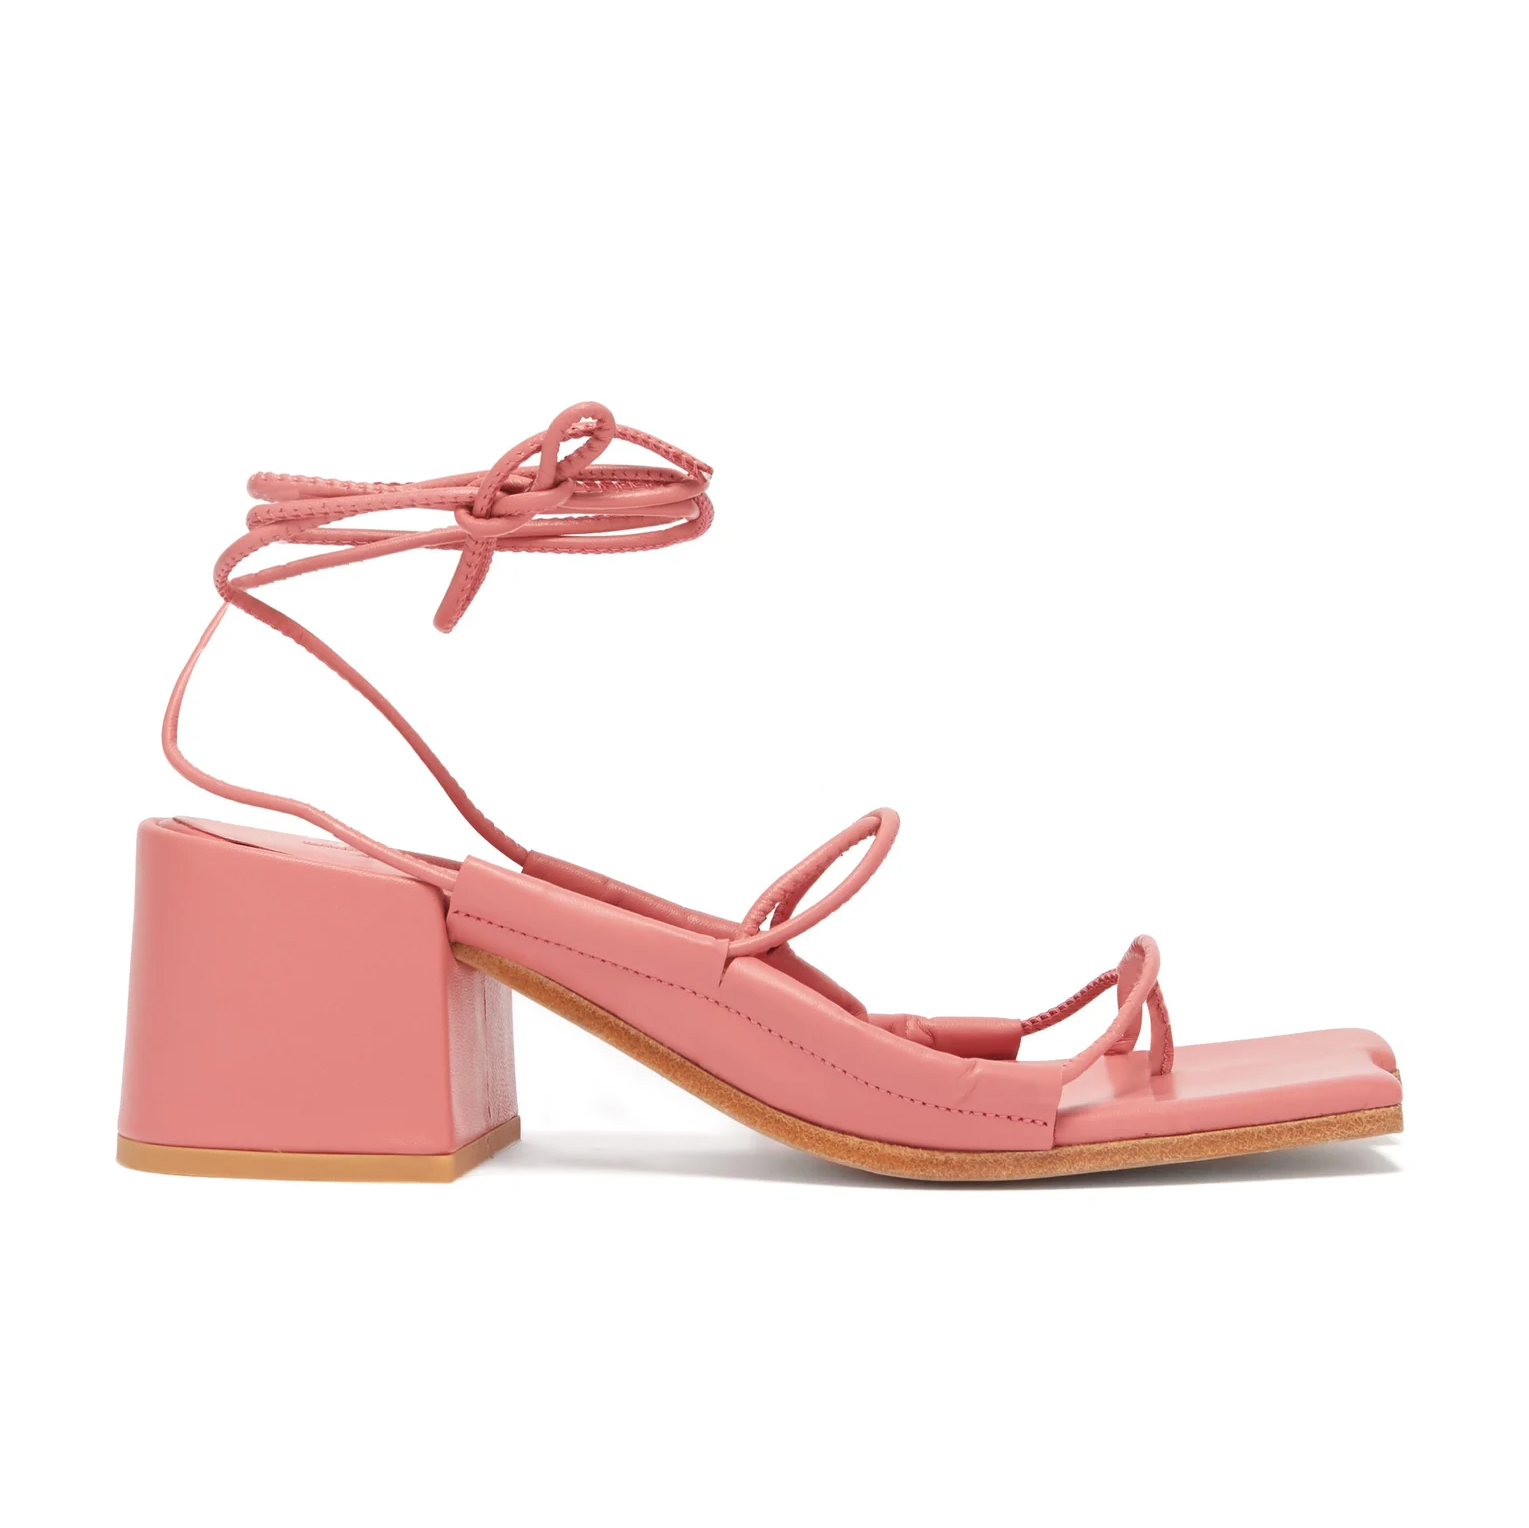 Asymmetric-Toe Wrap-Around Leather Sandals